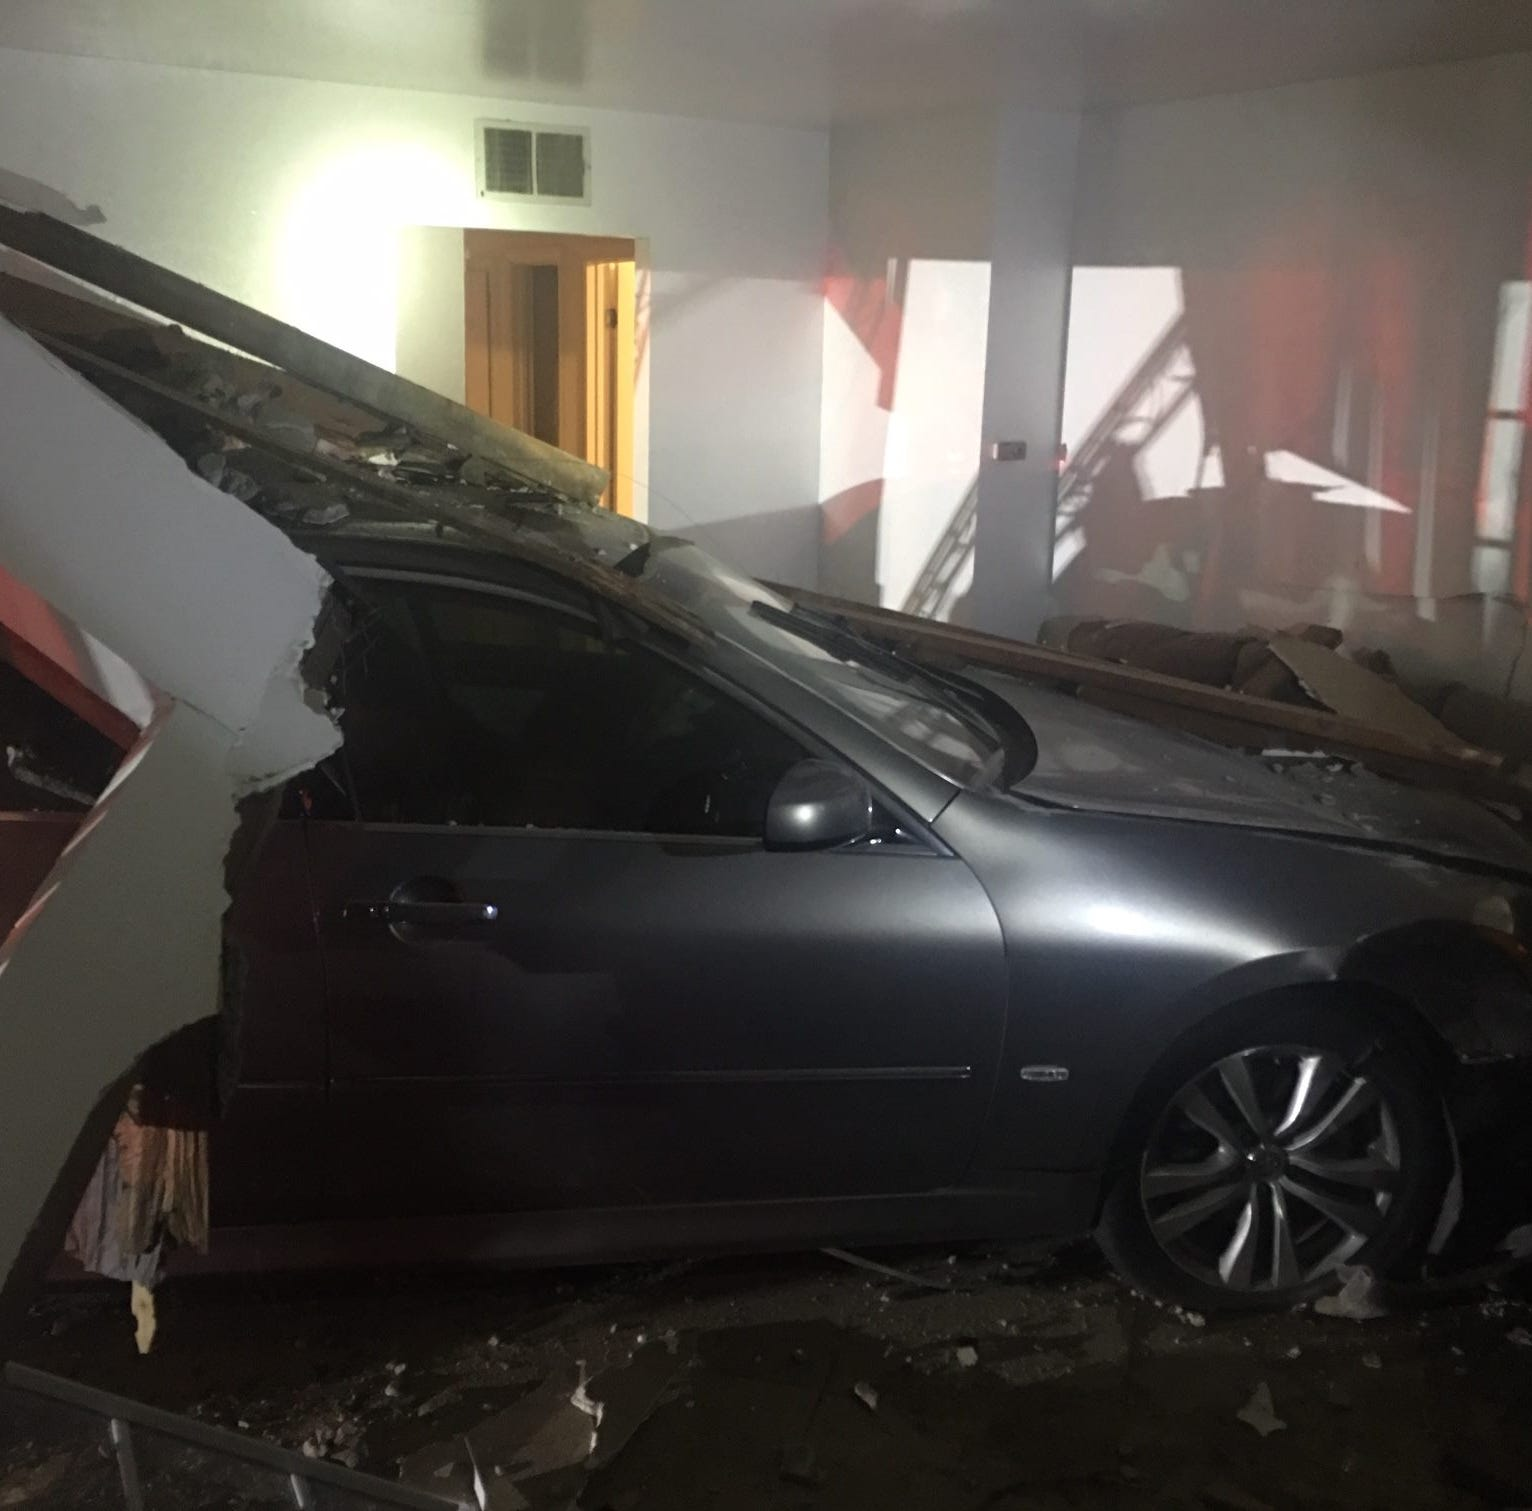 Driver missing after car crashes through Oxnard home; no injuries reported